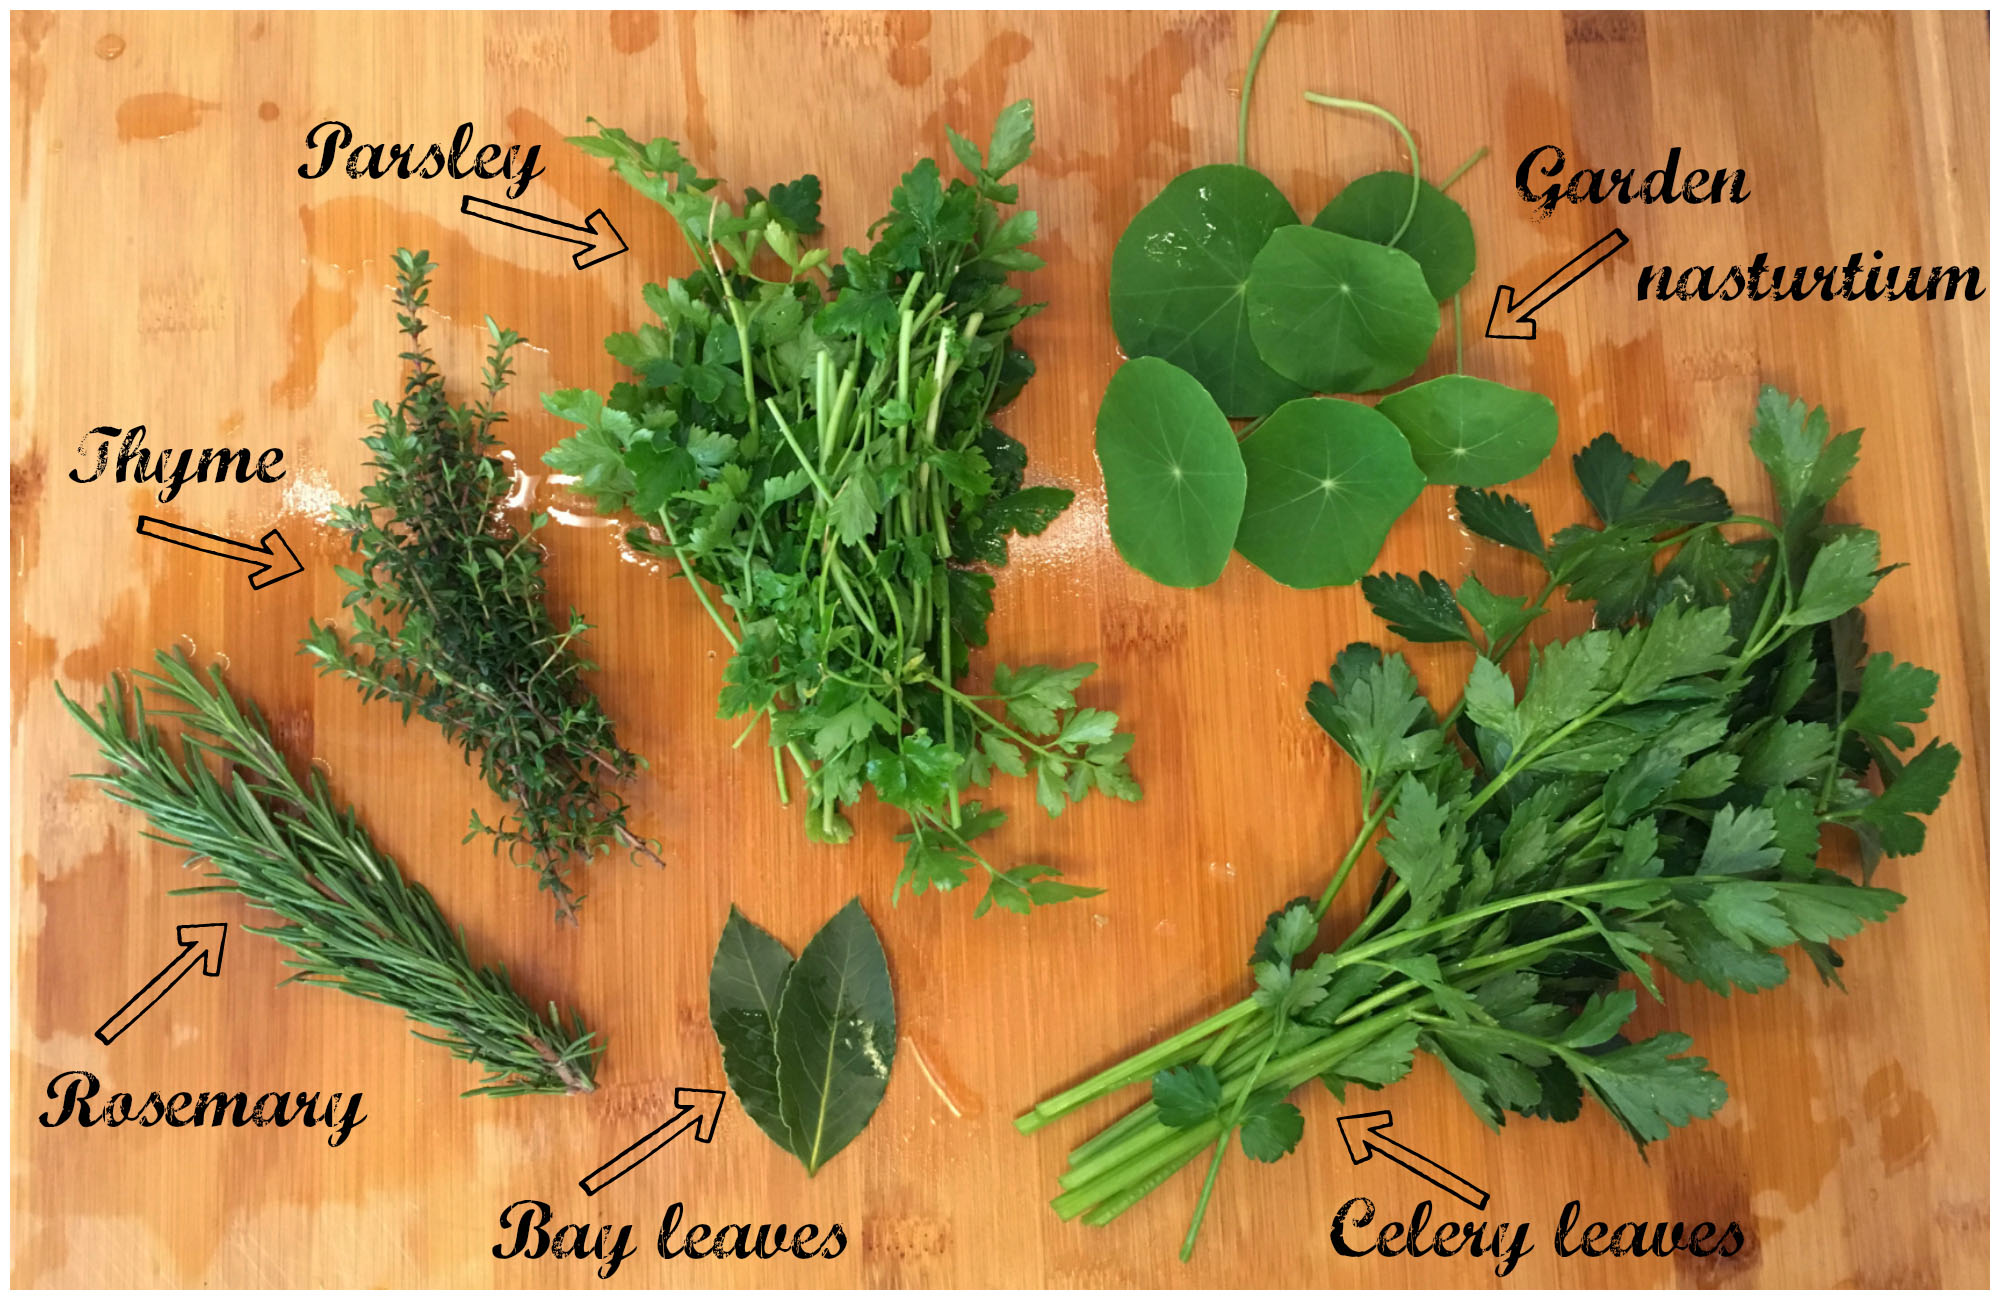 Garden Herbs for my Low Histamine Vegetable Stock Recipe